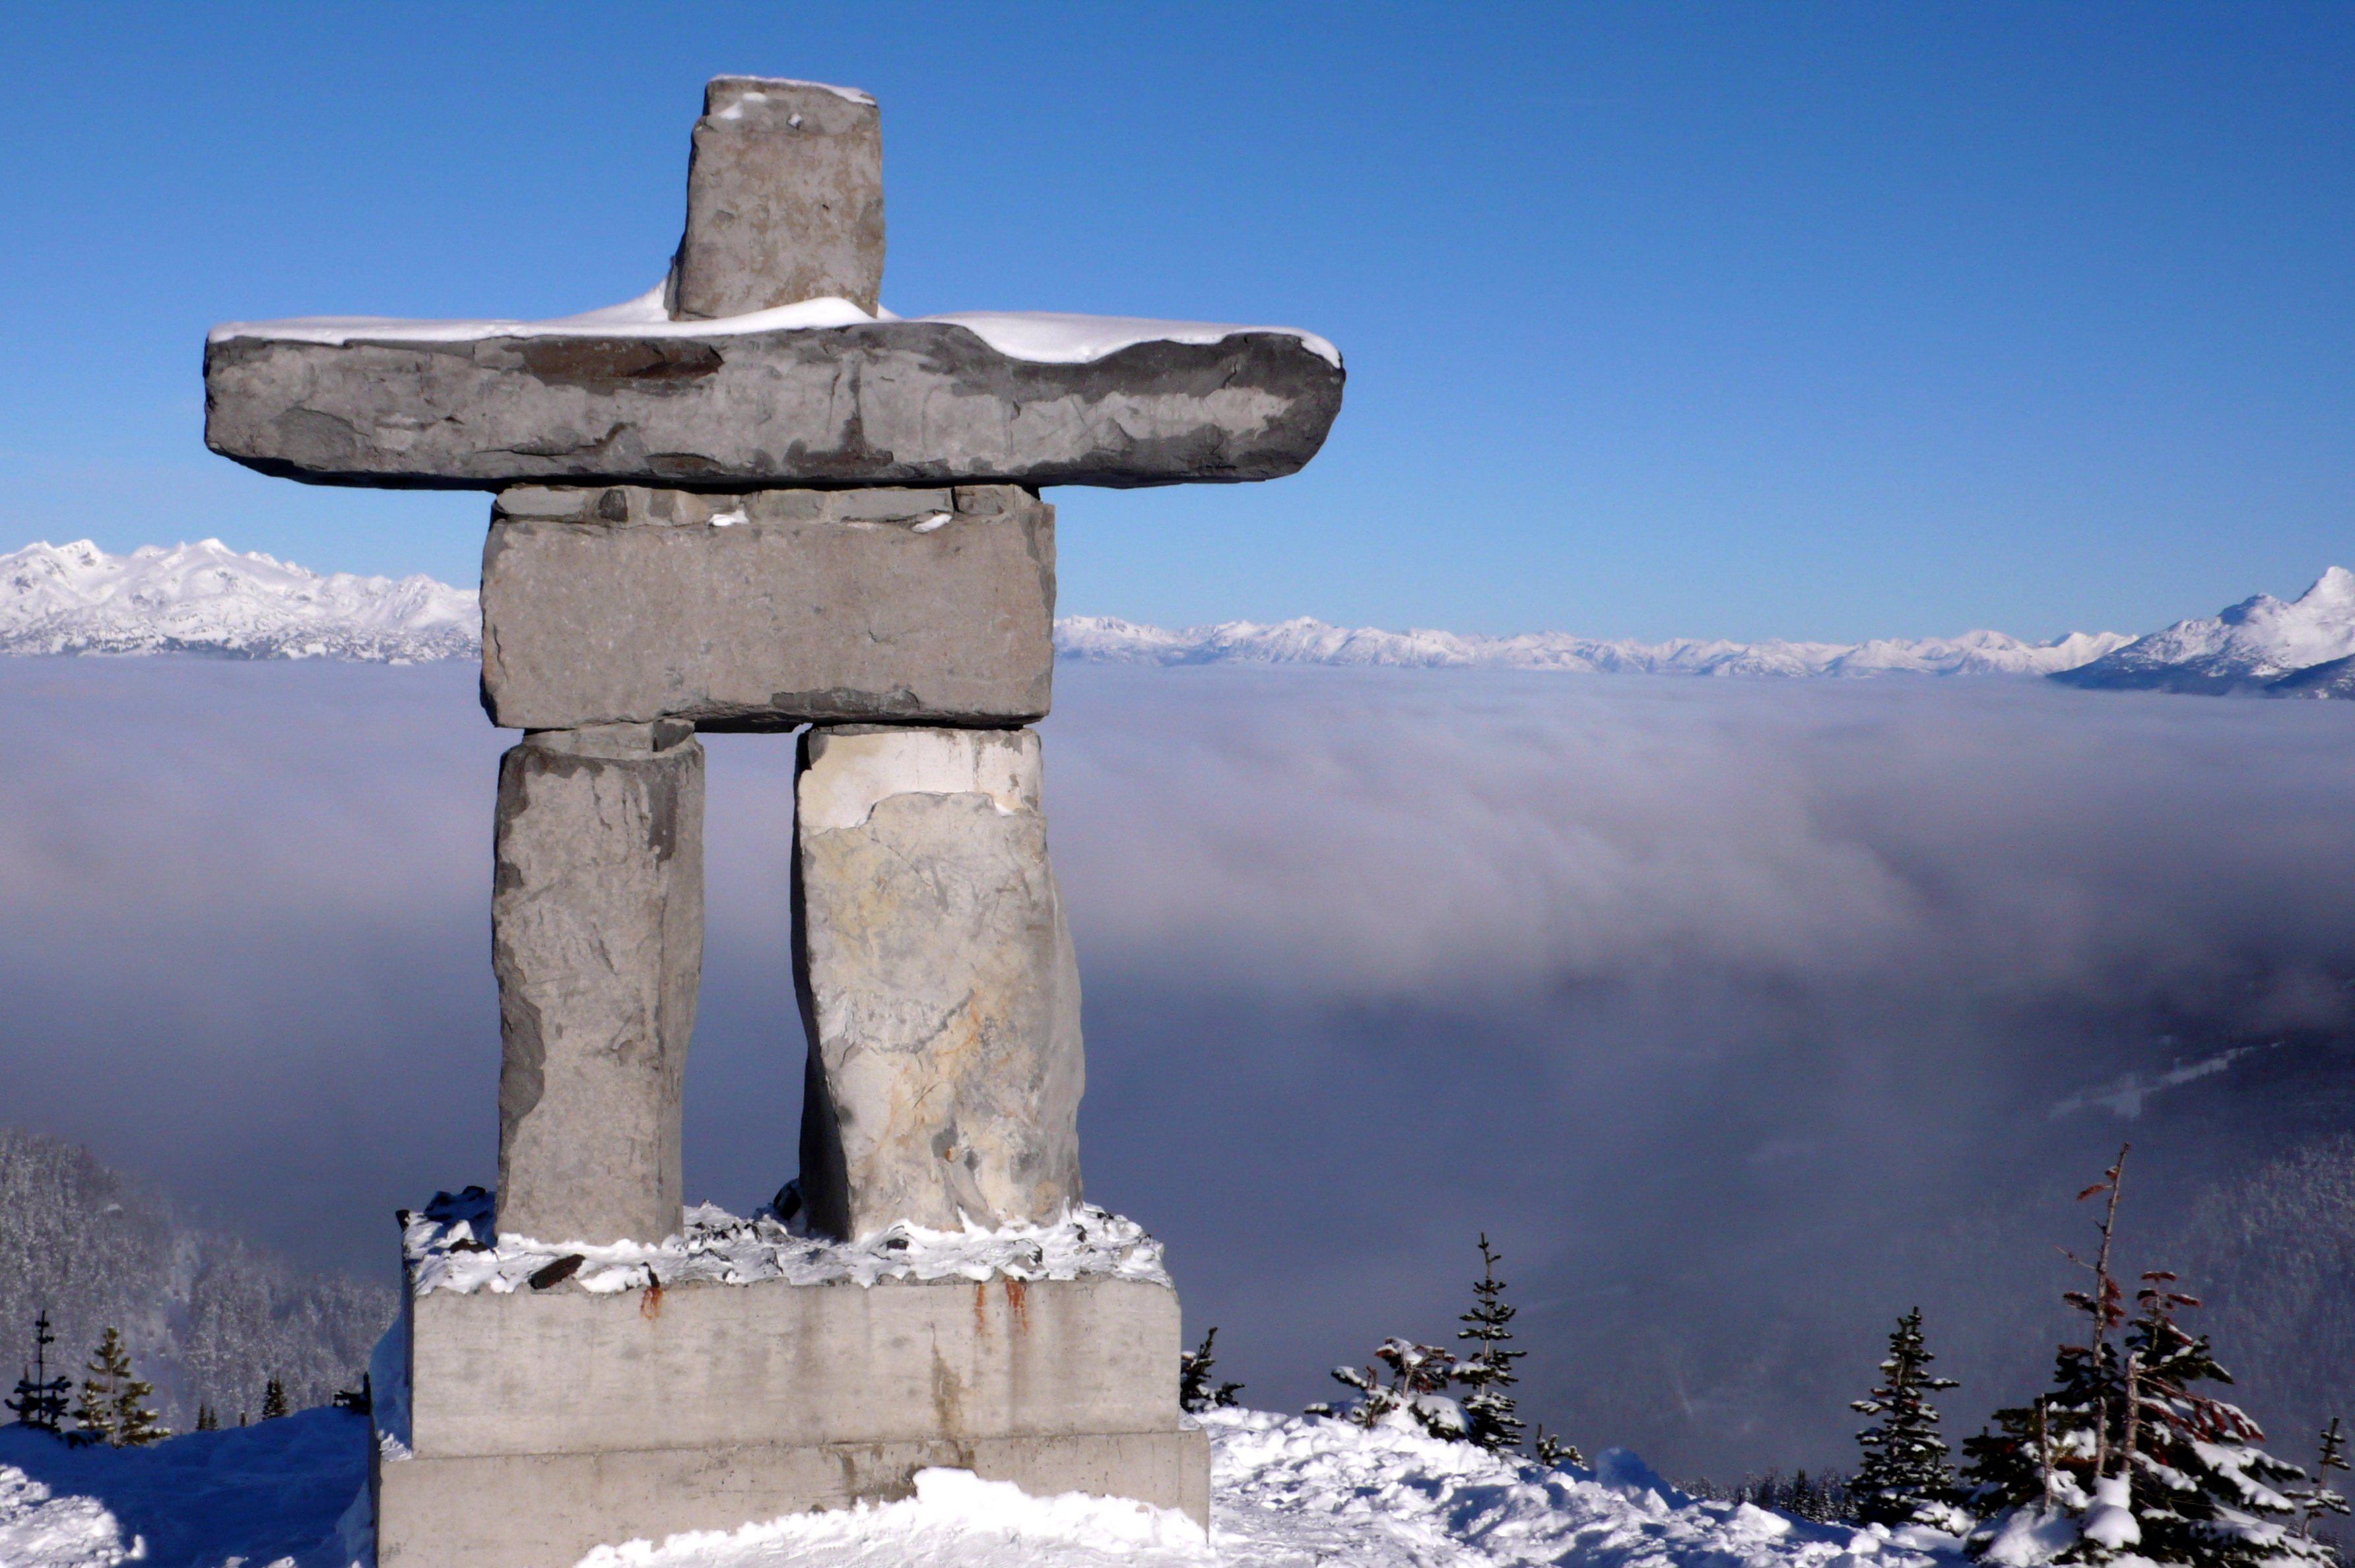 inukshuk publish with glogster